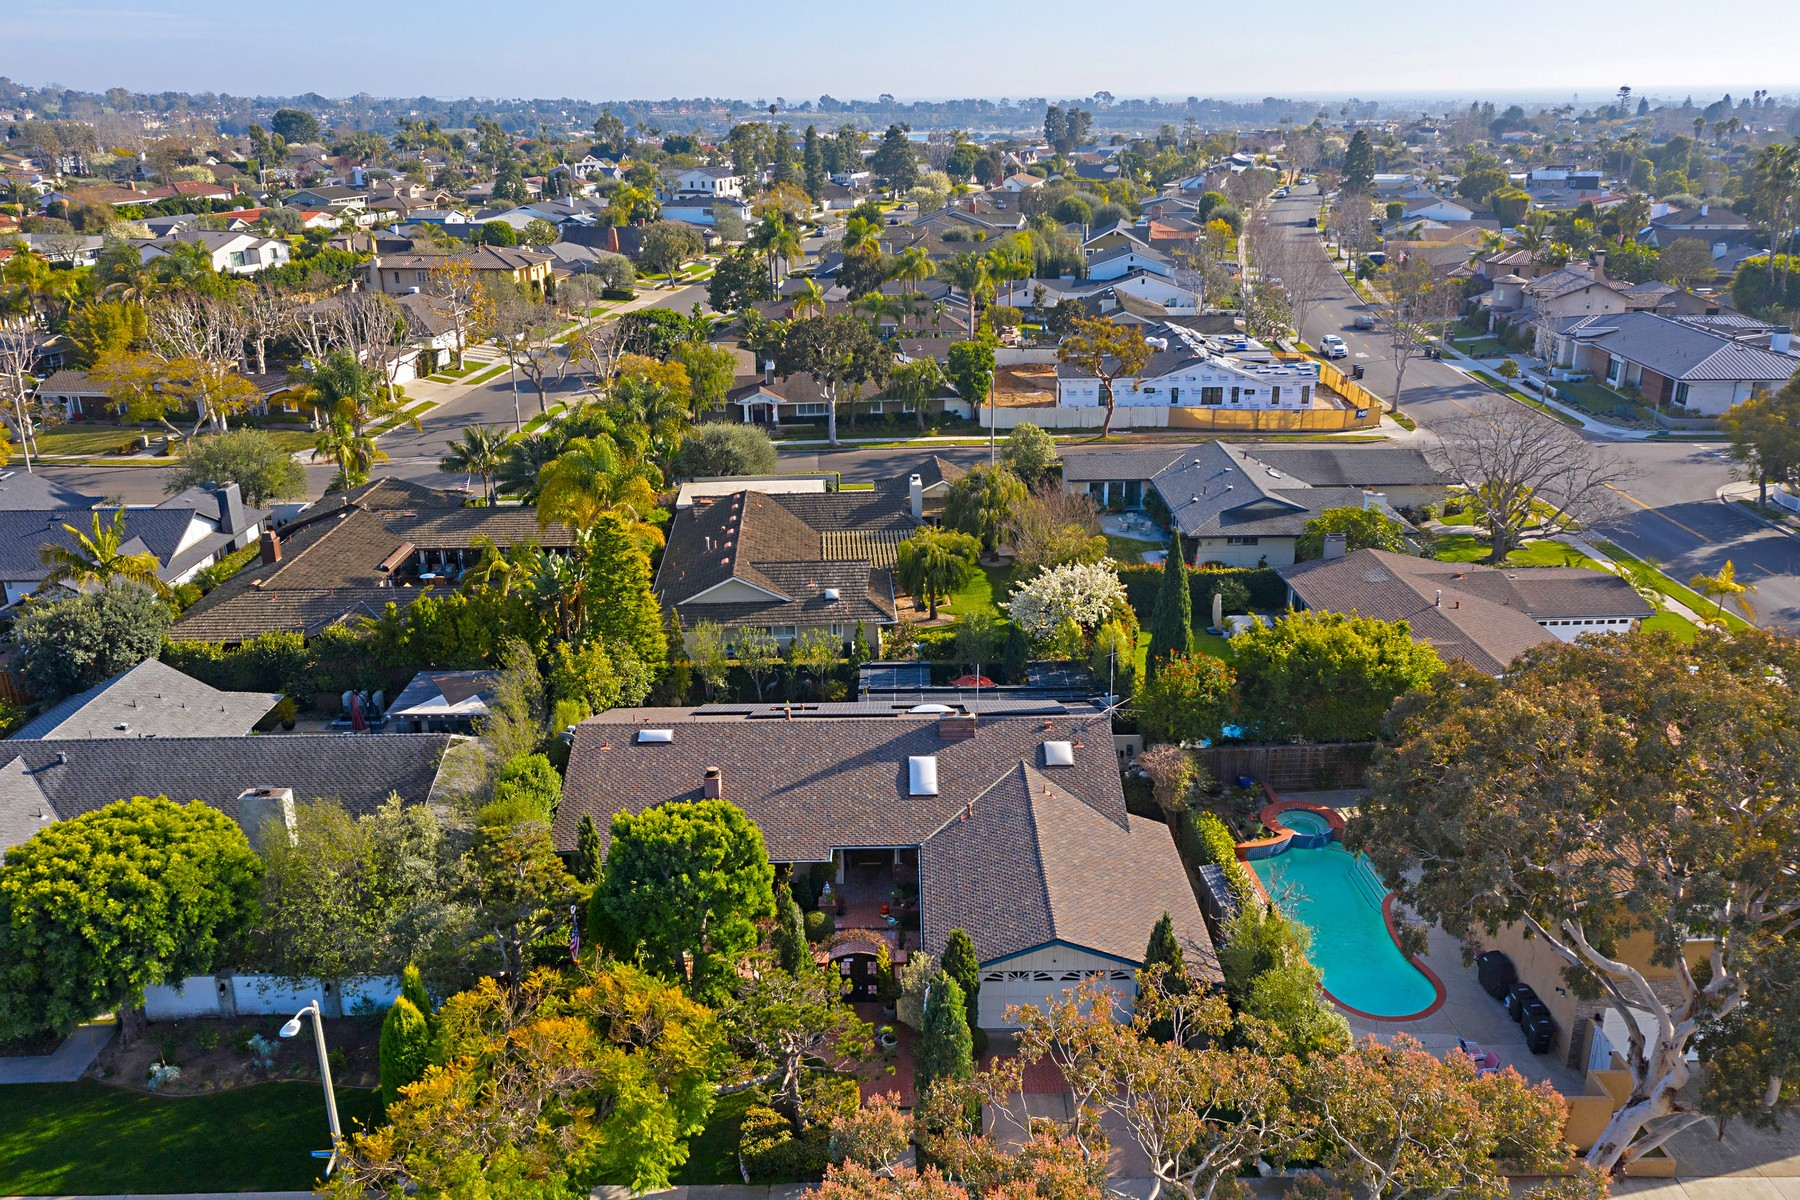 Single Family Homes for Sale at 1343 Mariners Drive Newport Beach, California 92660 United States